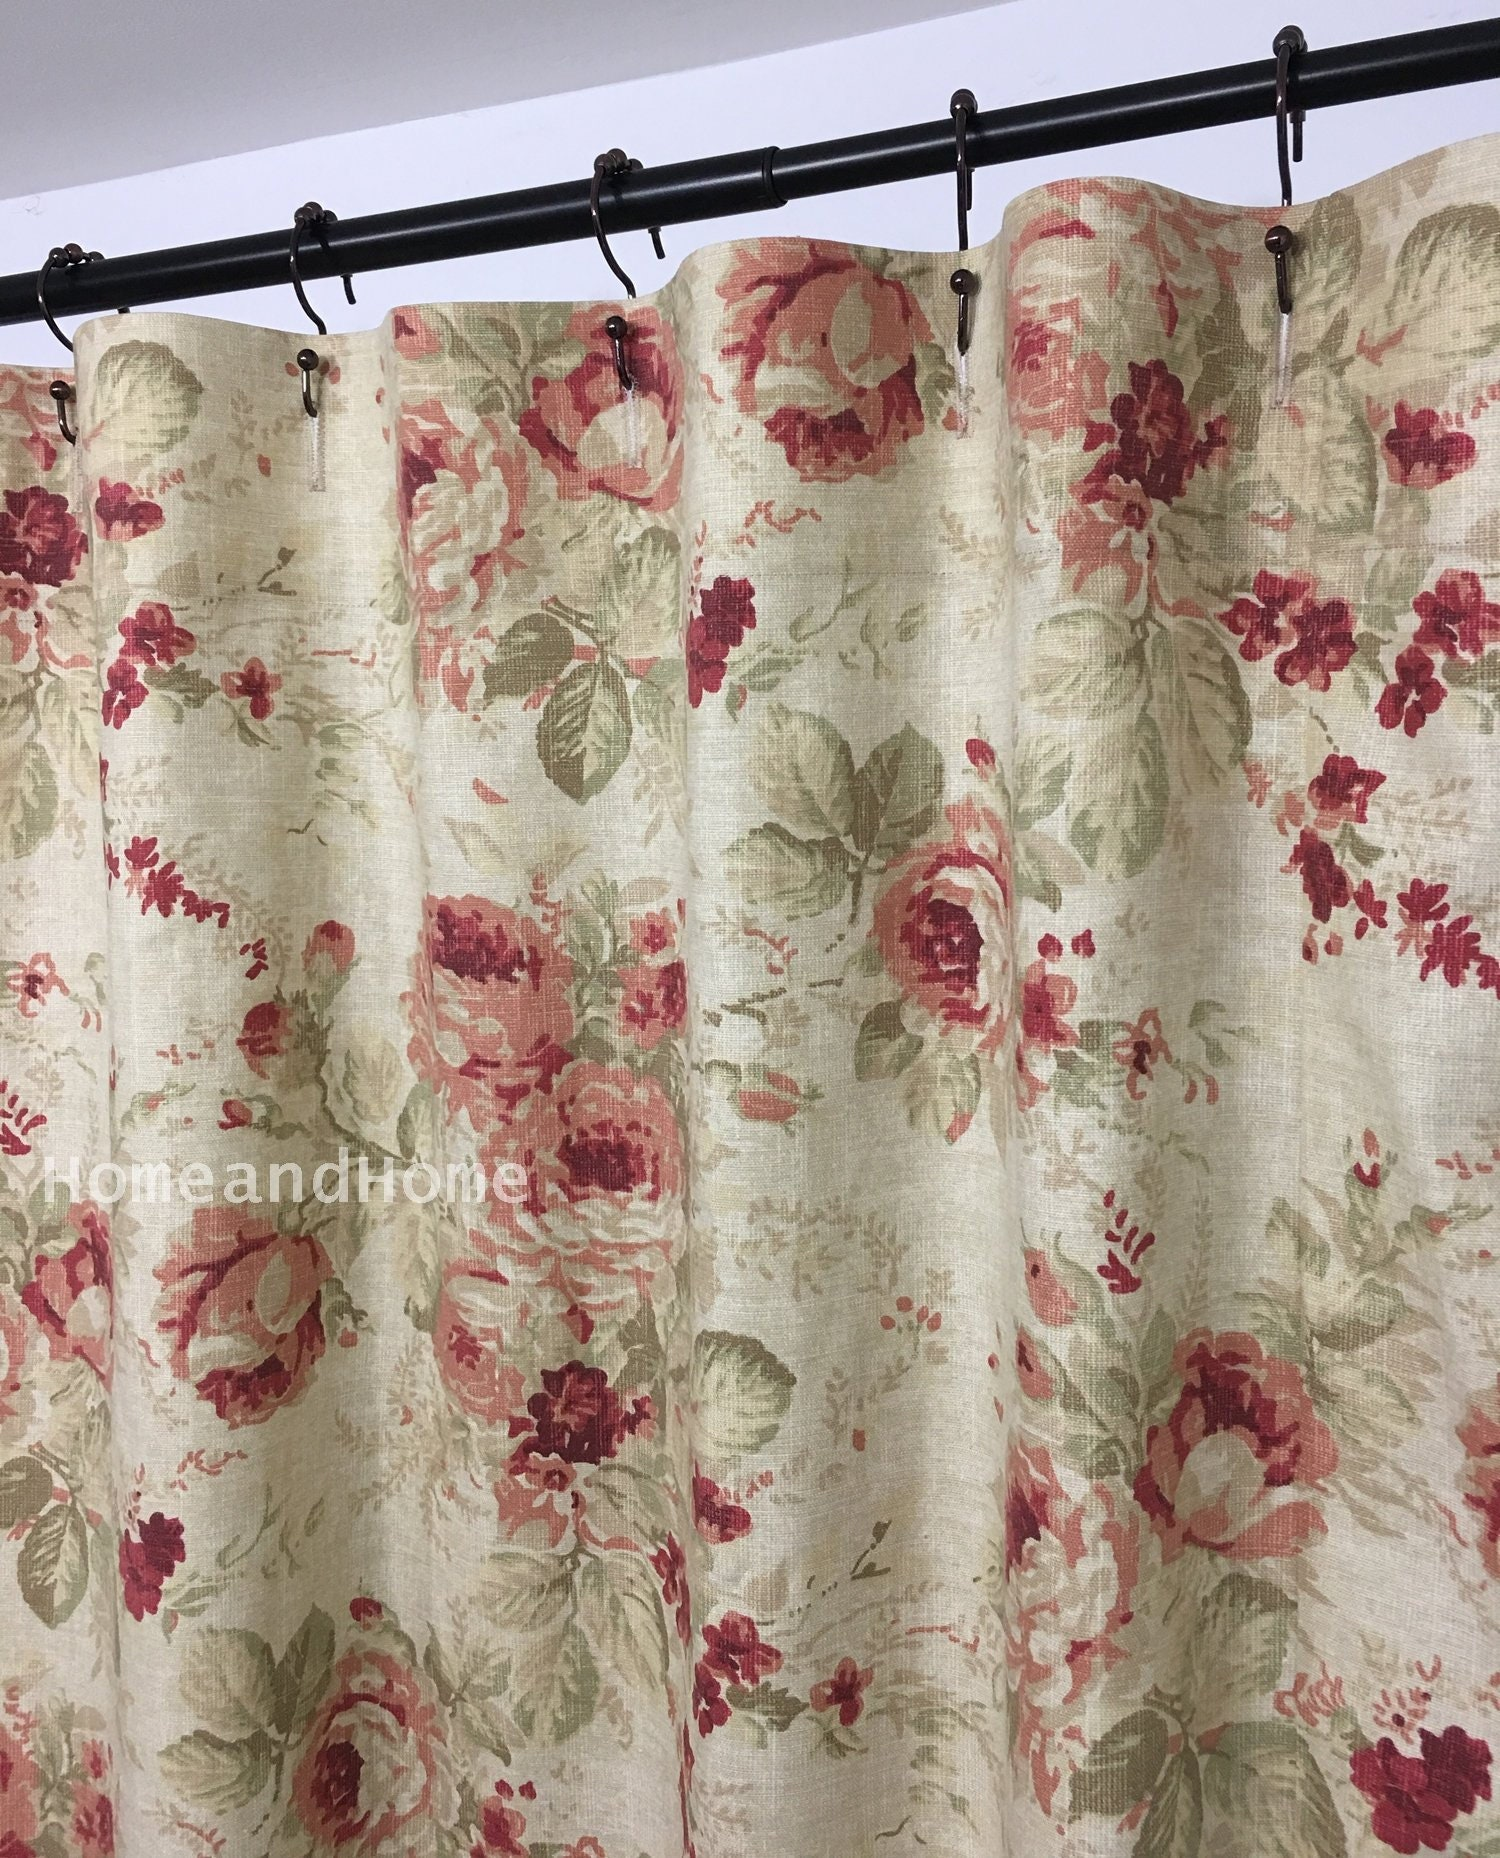 Many Designs Also Available in Extra Wide Extra Long Fabric Shower Curtains